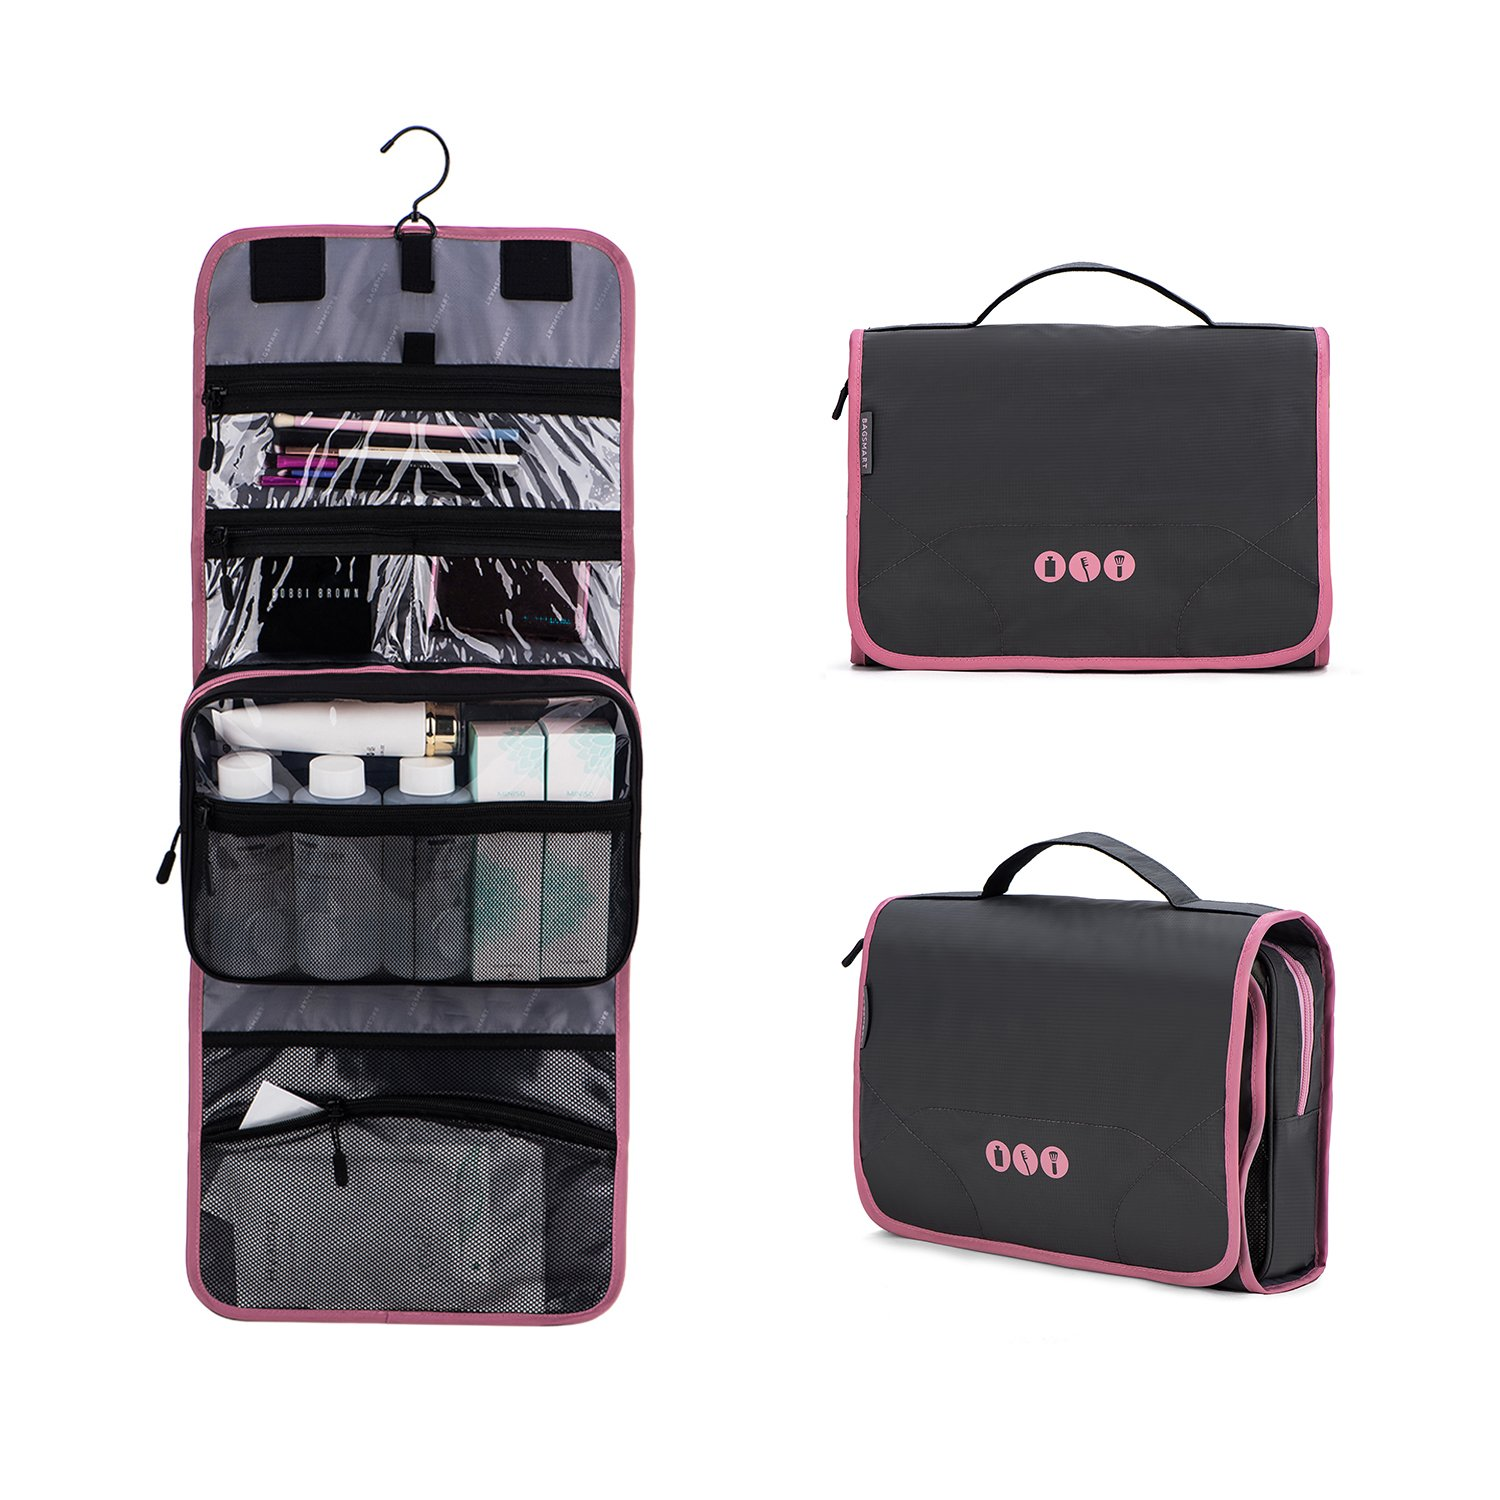 BAGSMART Hanging Travel Toiletry Bag Carry-on Makeup Organizer Folding Cosmetic Bag for Women and Men, Grey+ Pink